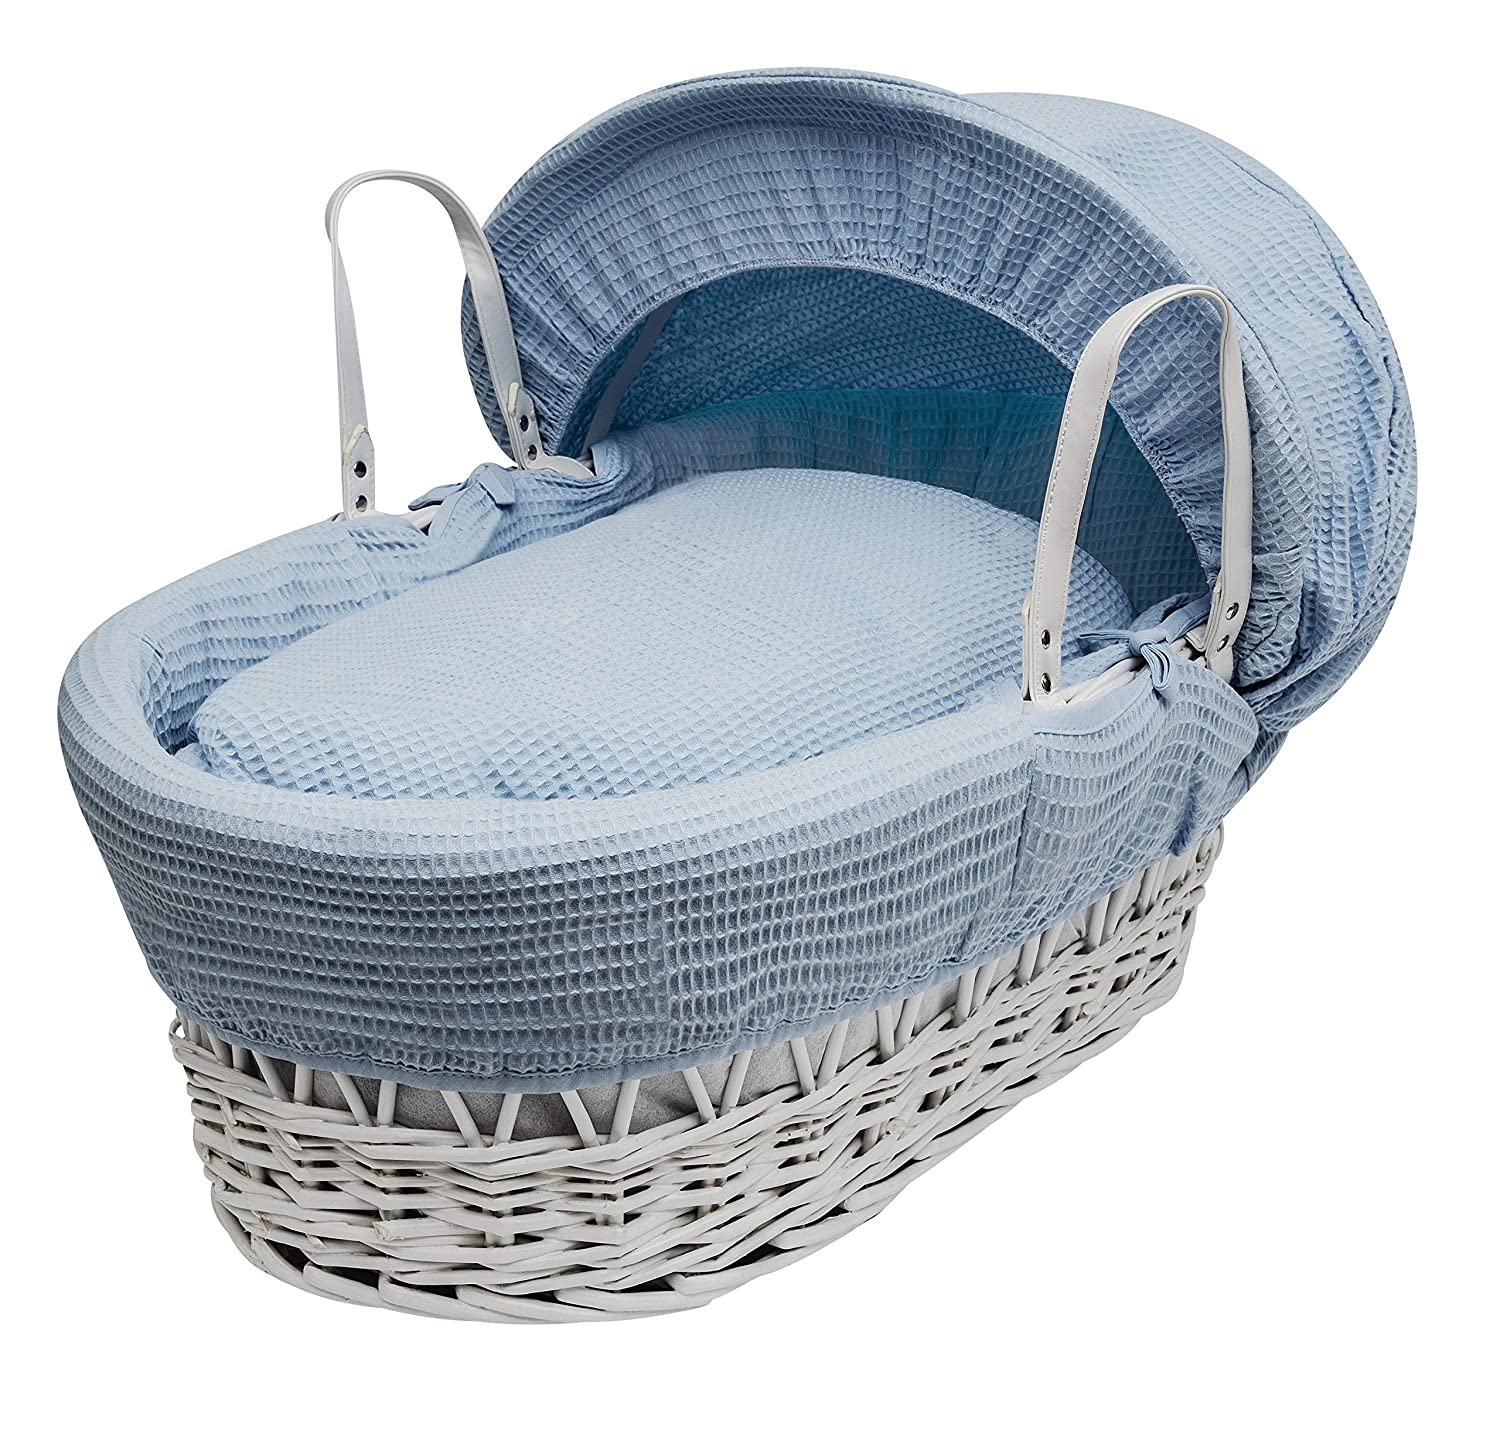 Hood Bars And fittings For Moses Baskets BASKET NOT INCLUDED